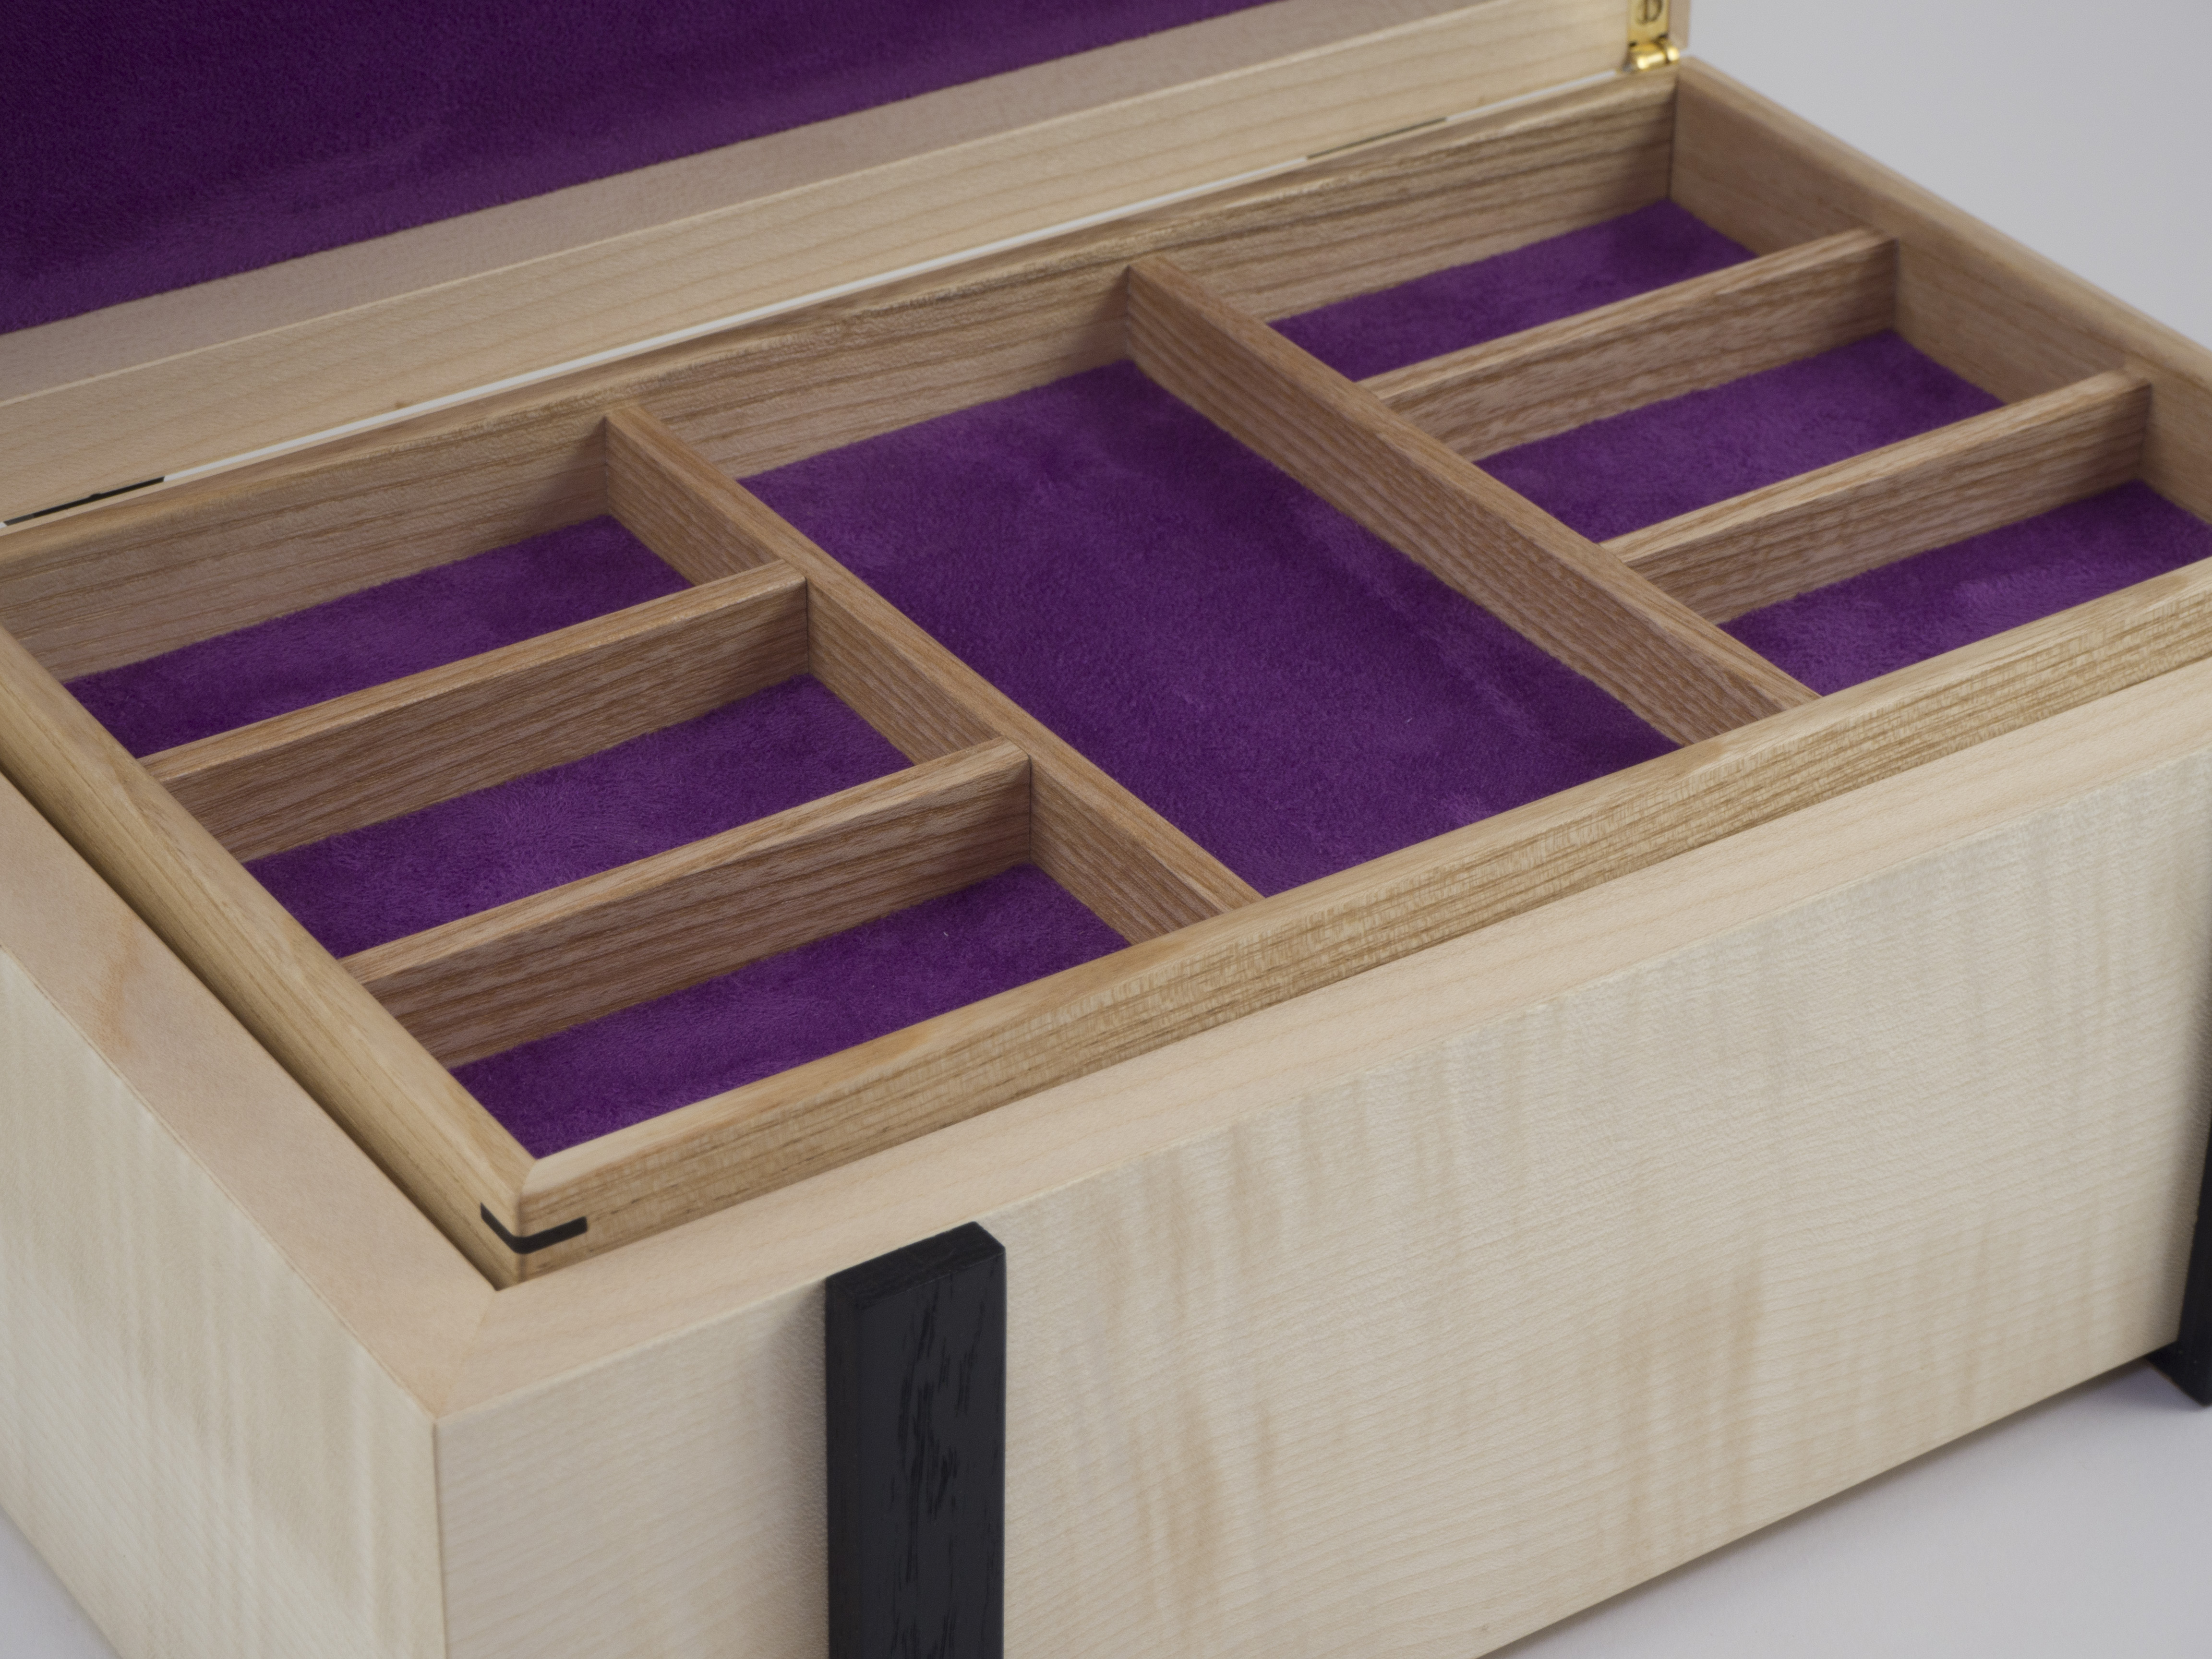 Close-up of jewellery storage tray